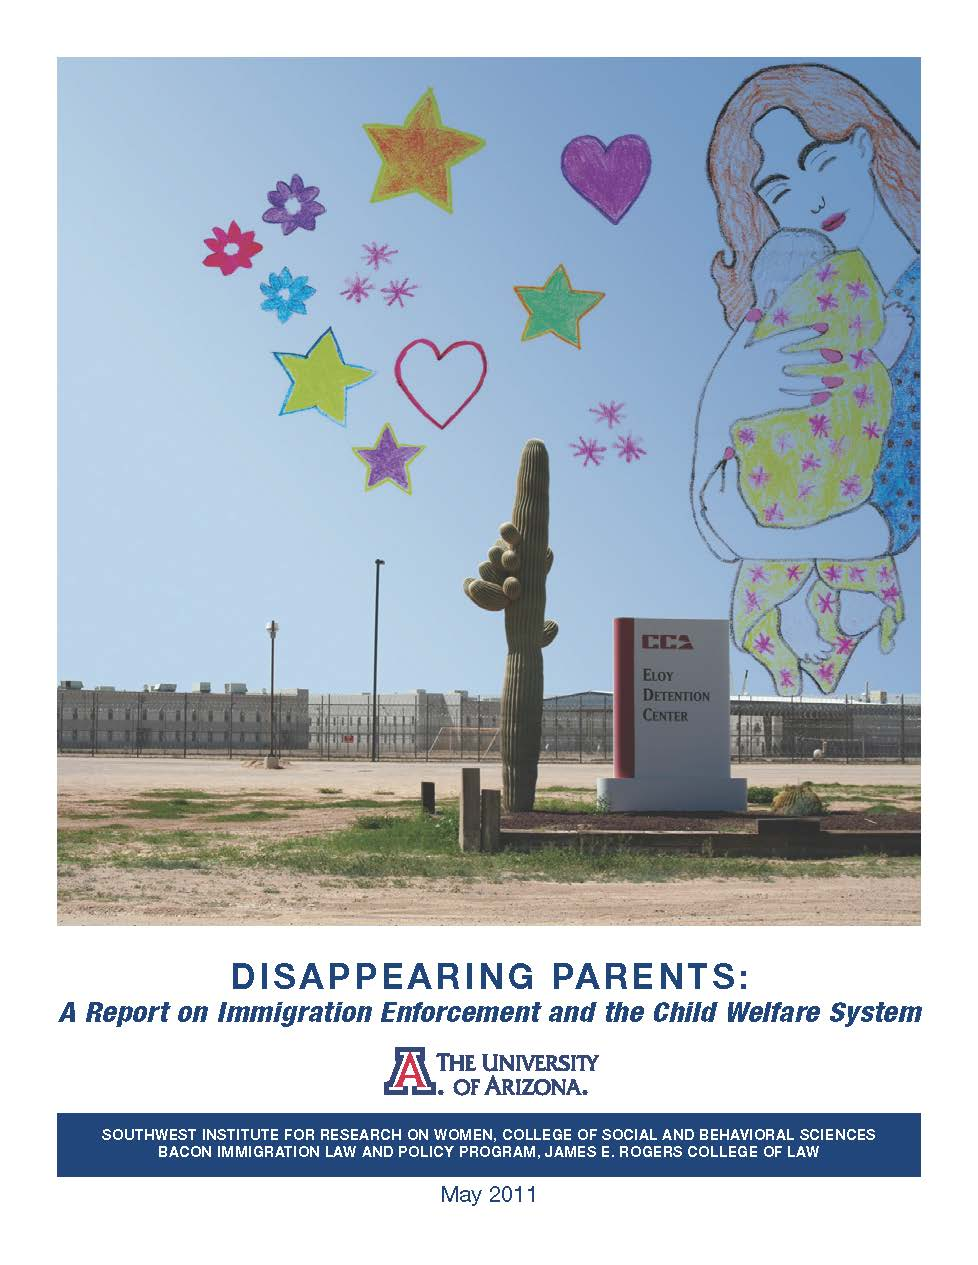 Cover of Disappearing Parents report